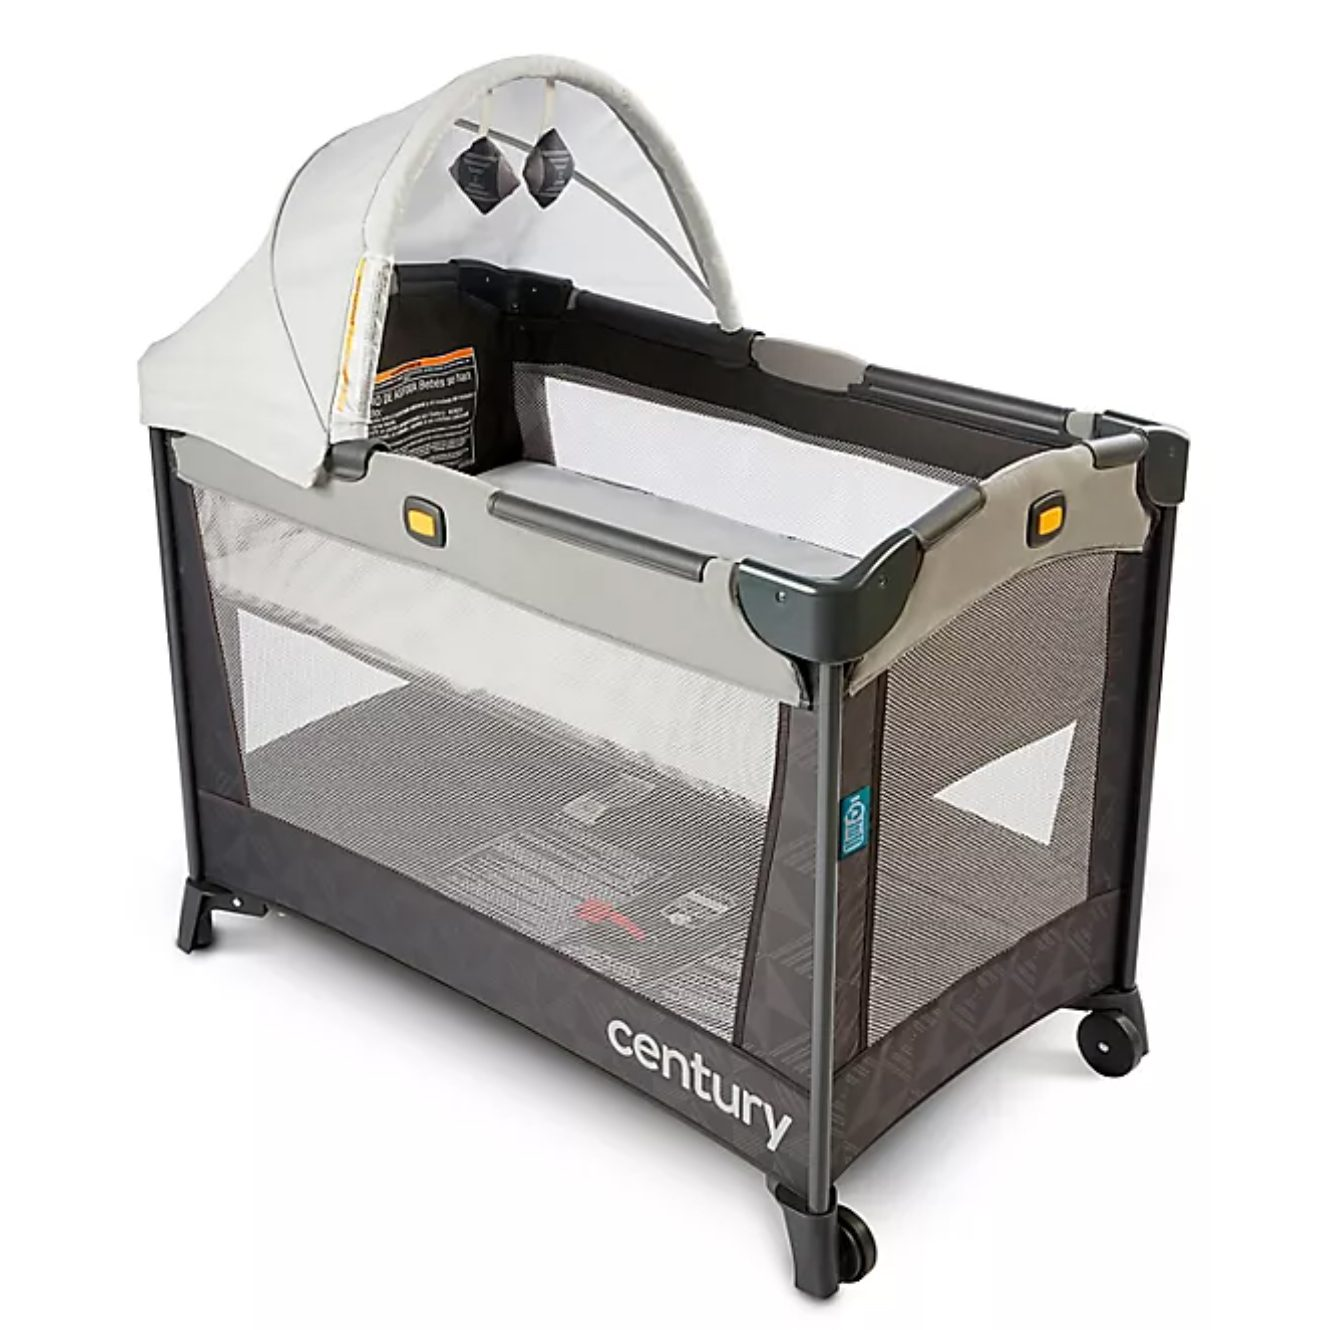 Century® Travel On™ LX 2-in-1 Compact Playard with Bassinet for the new grandma